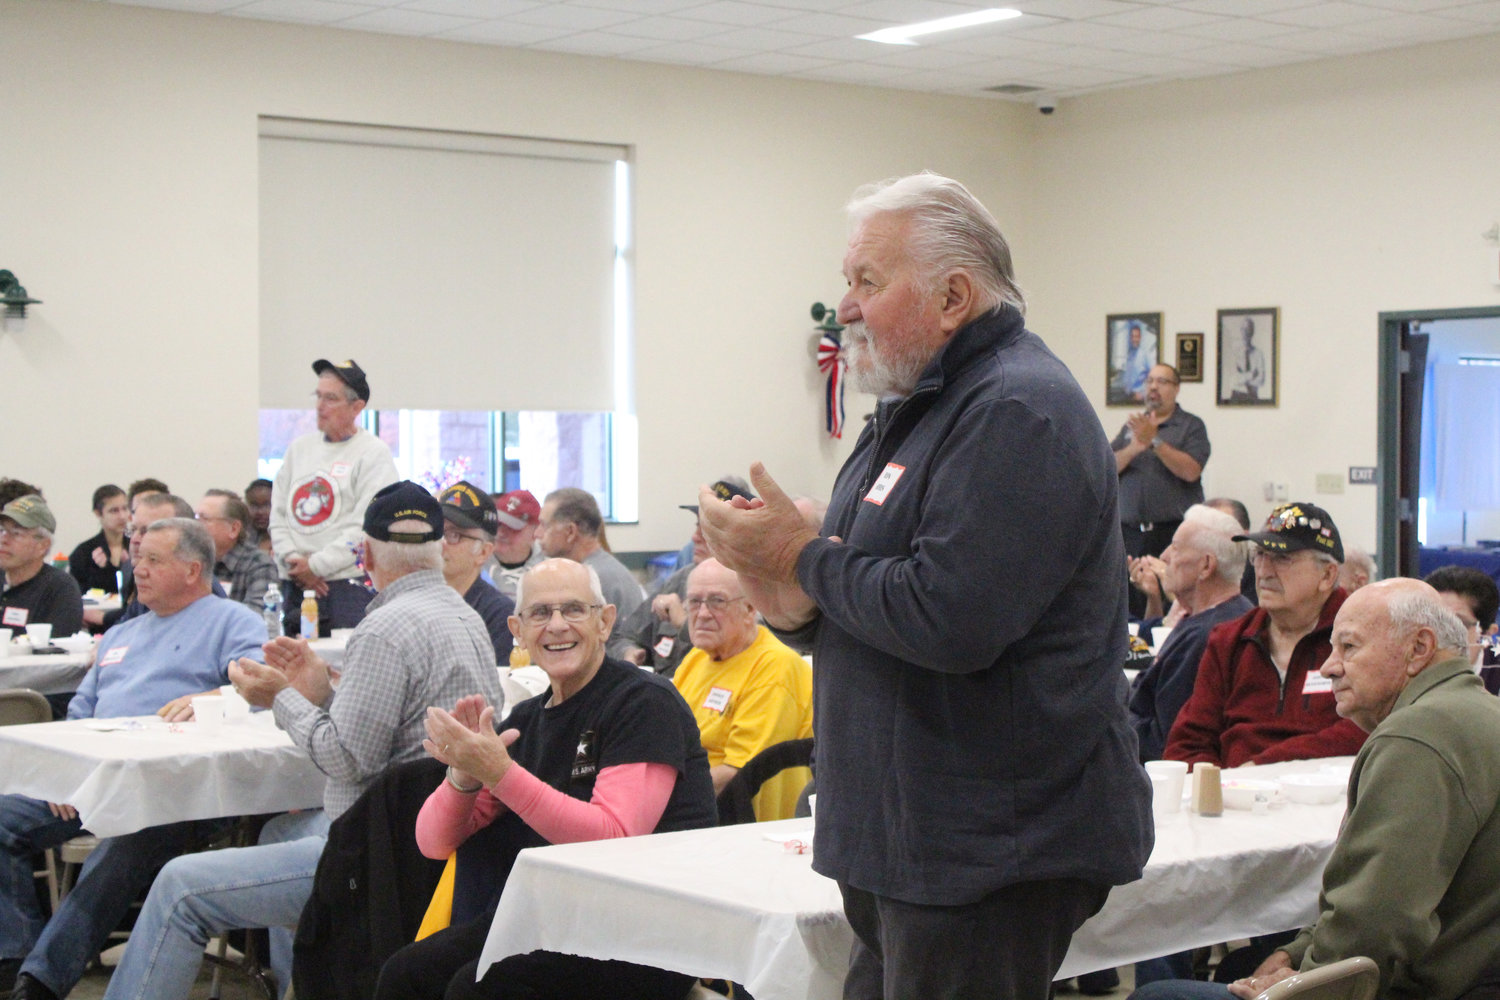 Marine Corps veteran Ron Arris stands as the marines are recognized during Rep. Tom Mehaffie's Veterans Breakfast at the Lower Swatara Fire Hall Nov. 8.